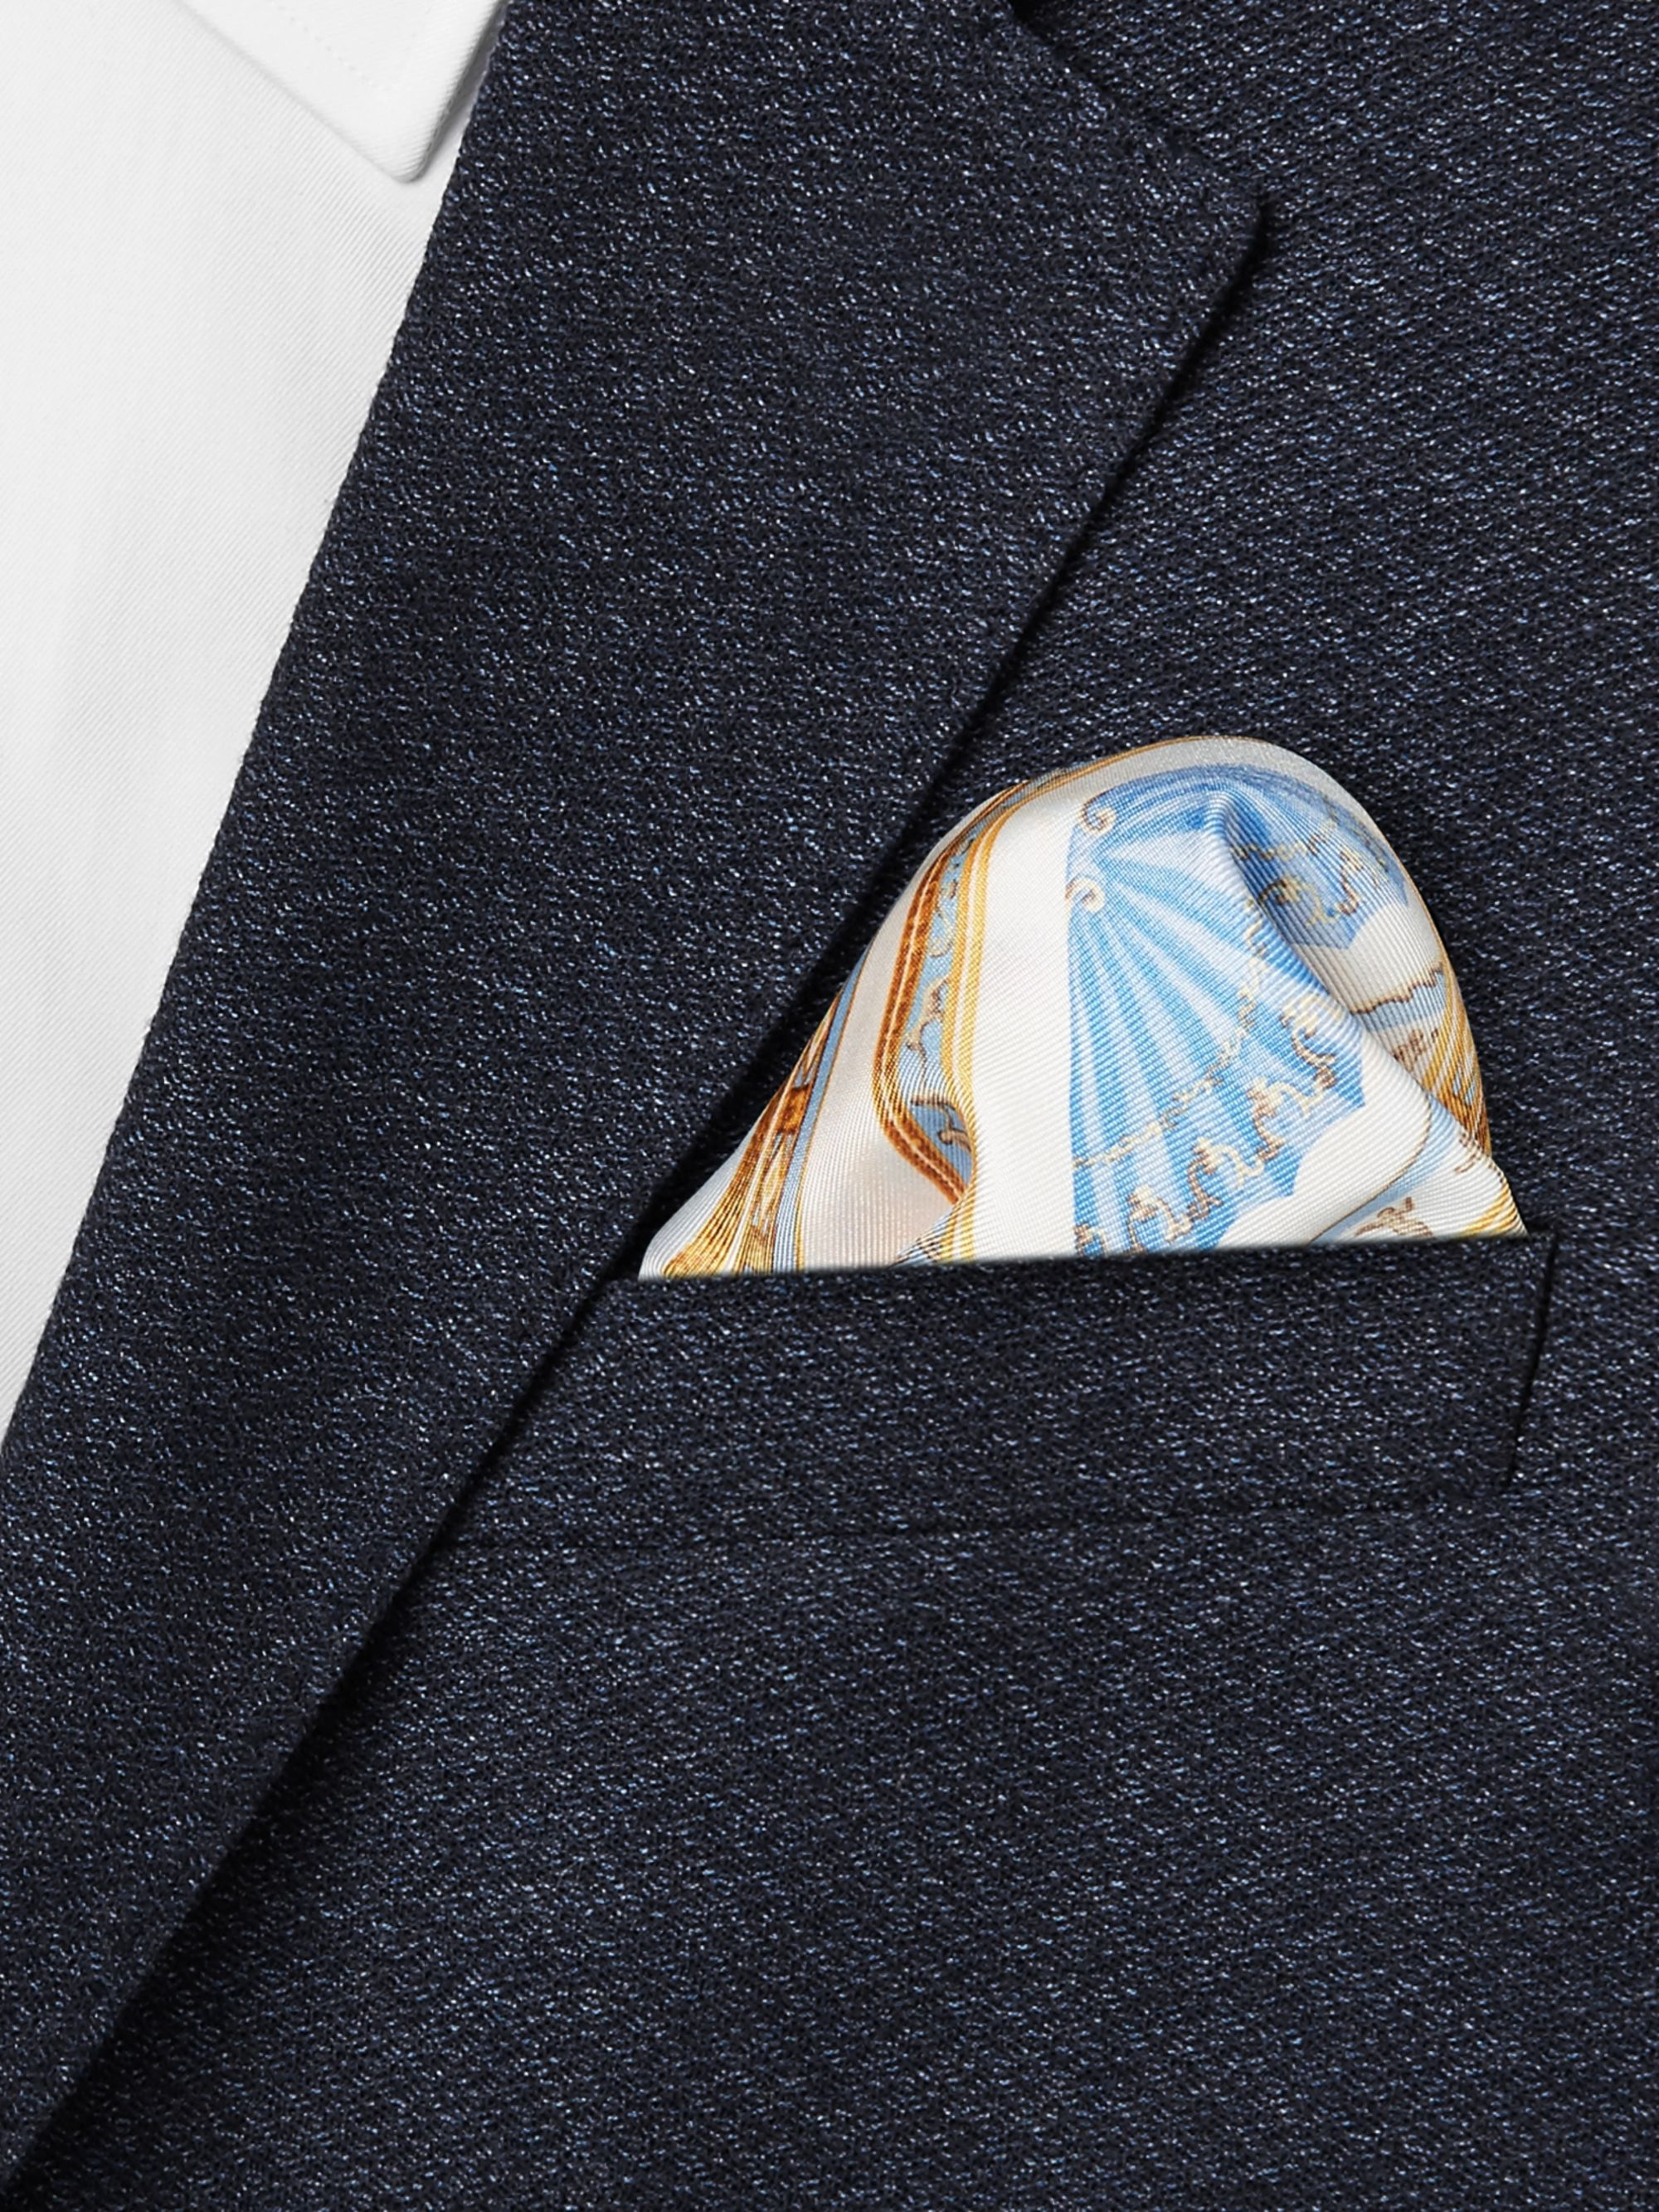 Rubinacci Printed Silk-Twill Pocket Square